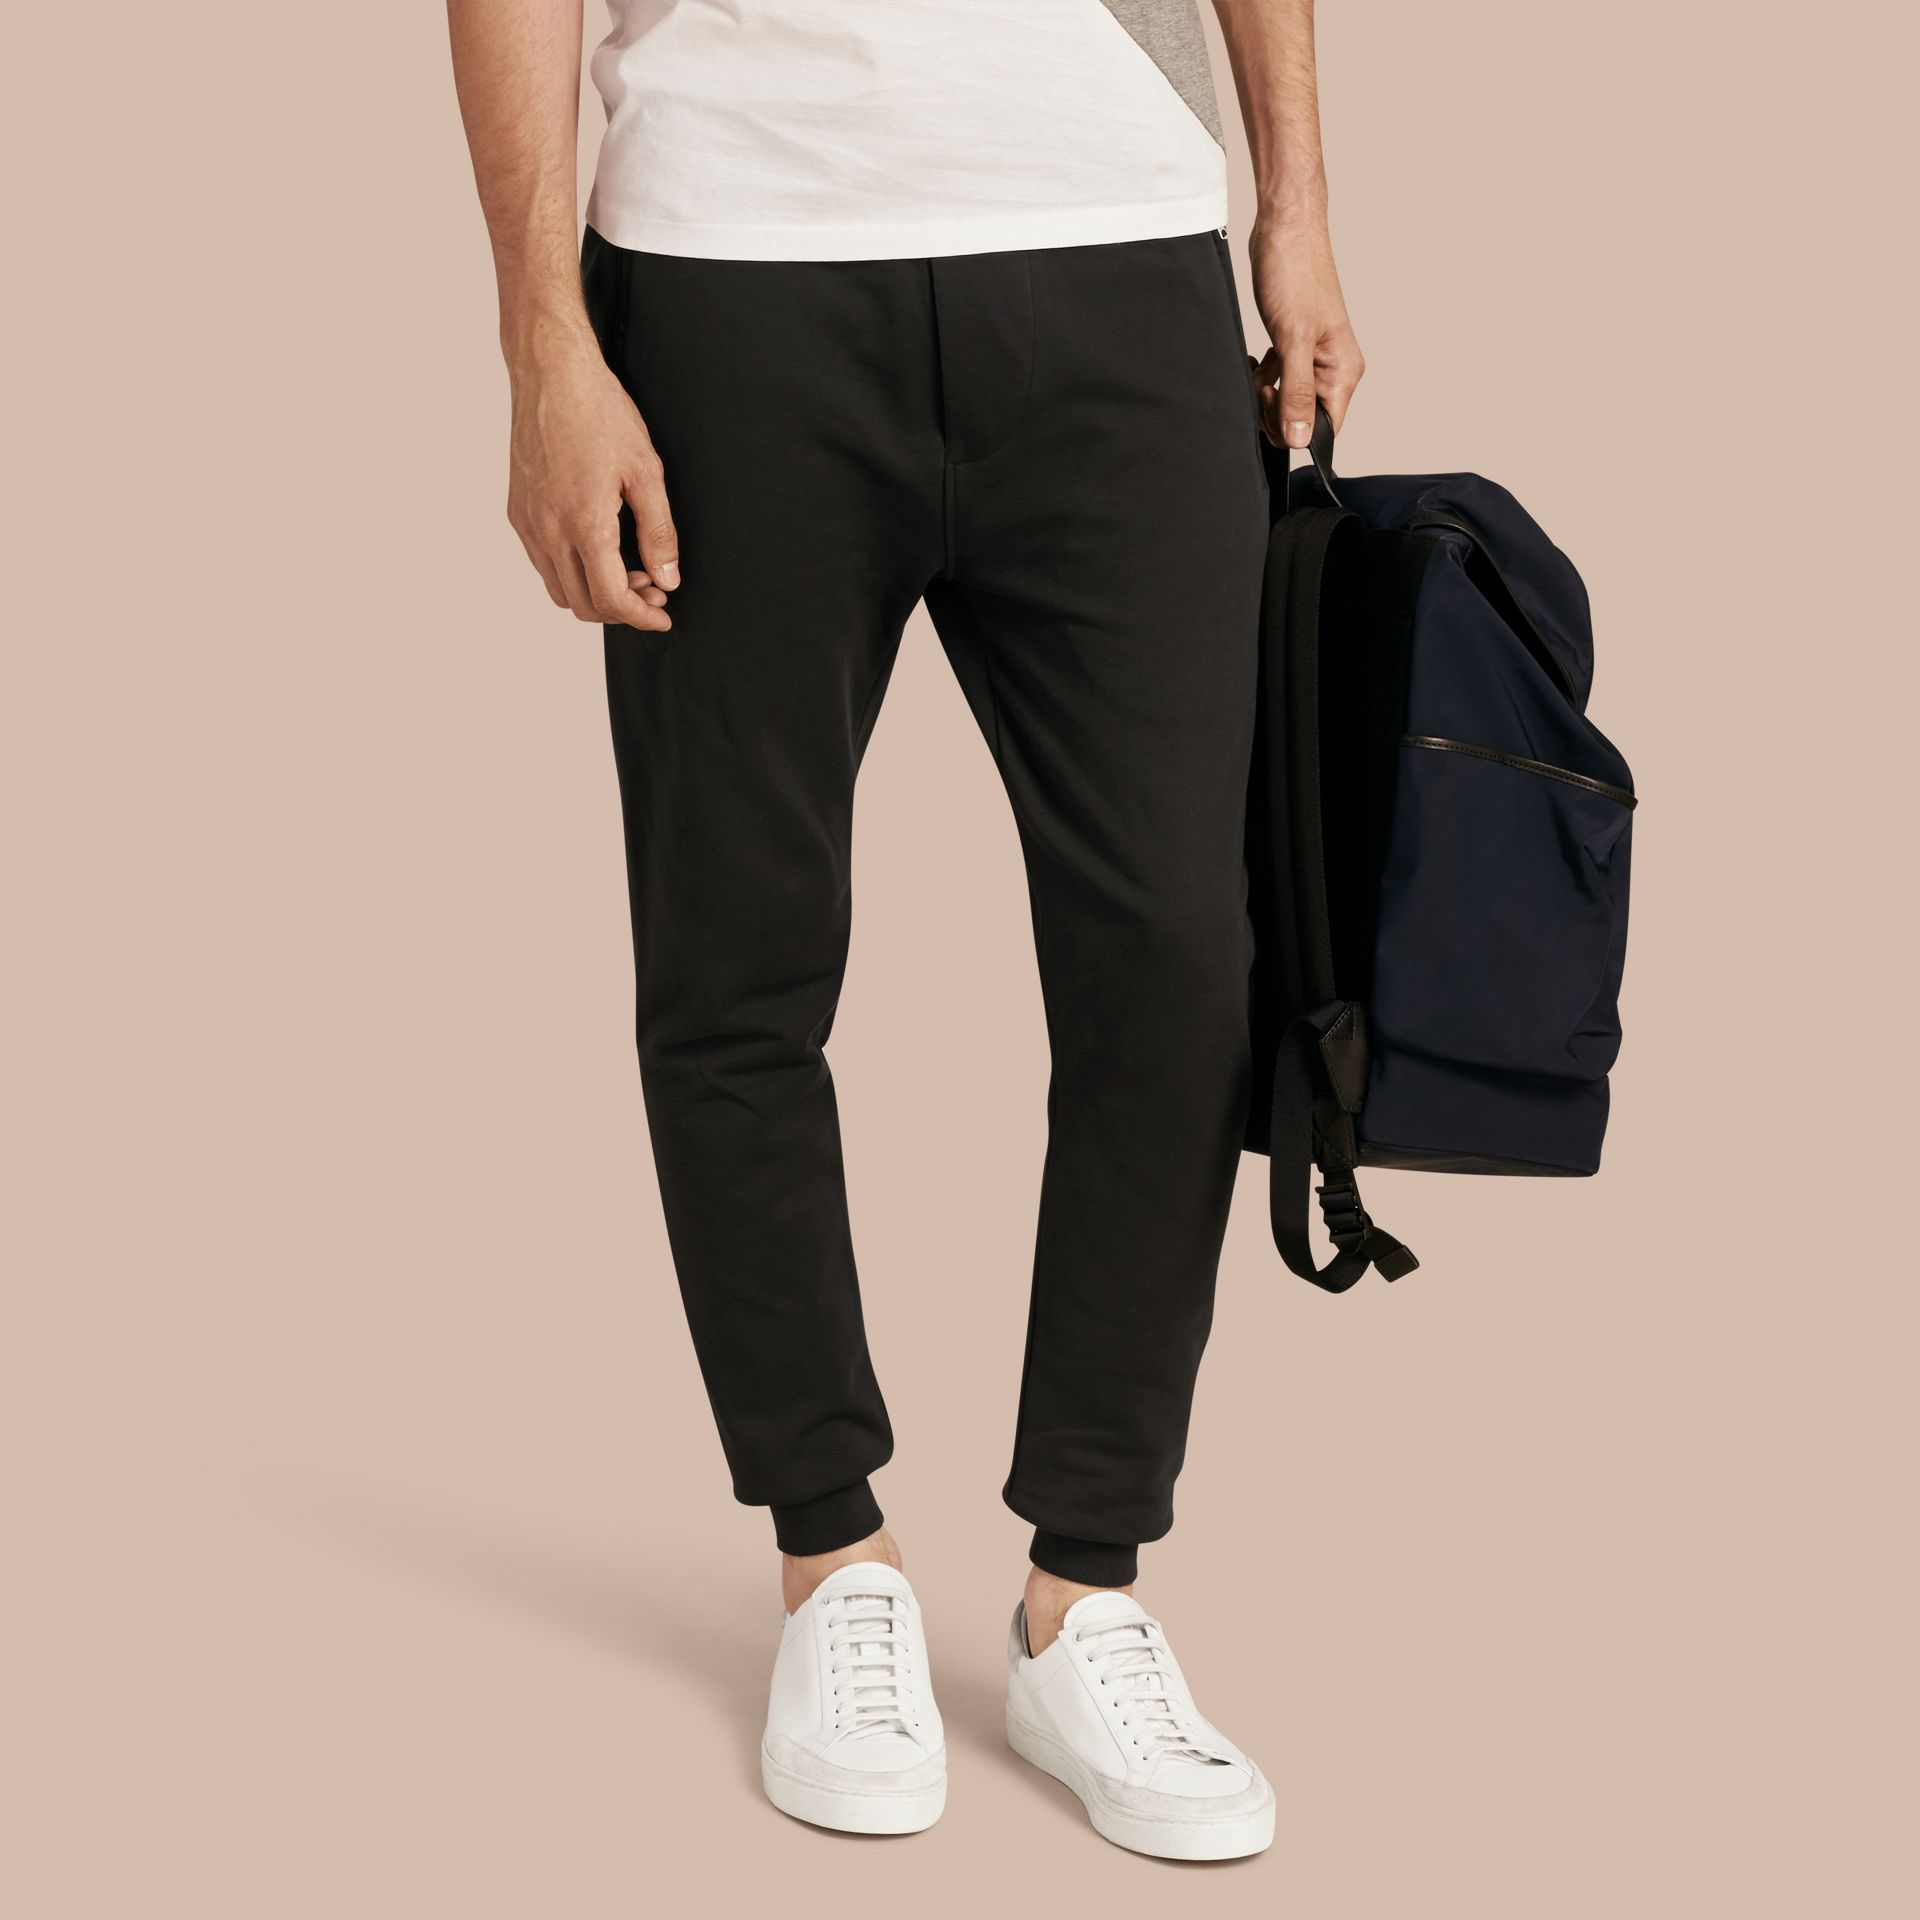 Cotton Sweatpants in Black - Men | Burberry Canada - gallery image 1